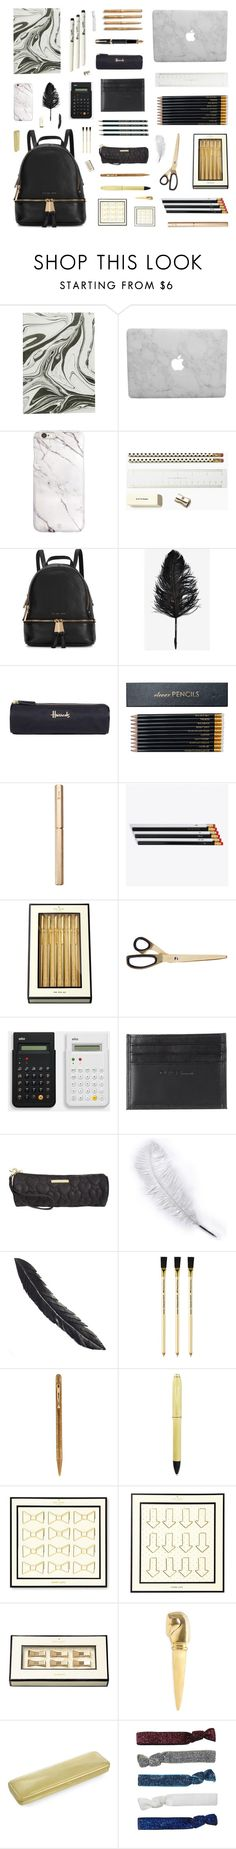 """""""Modern Backpack"""" by belenloperfido ❤ liked on Polyvore featuring Kate Spade, Michael Kors, Fountain, Harrods, Sloane Stationery, ystudio, i am a, Unison, Class Roberto Cavalli and Faber-Castell"""